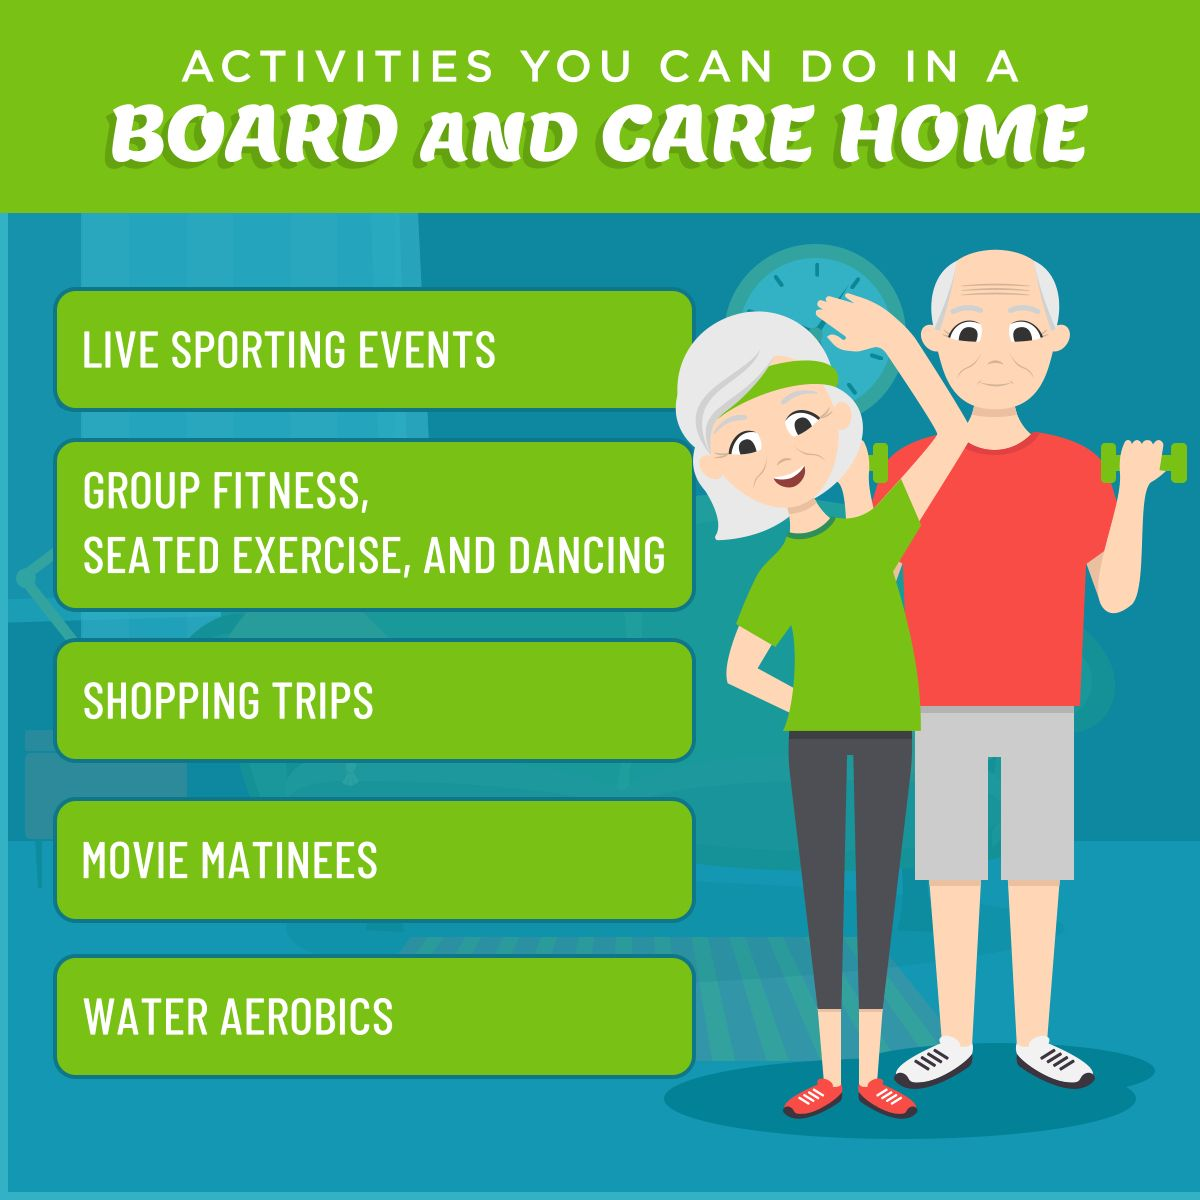 Activities You Can Do in a Board and Care Home